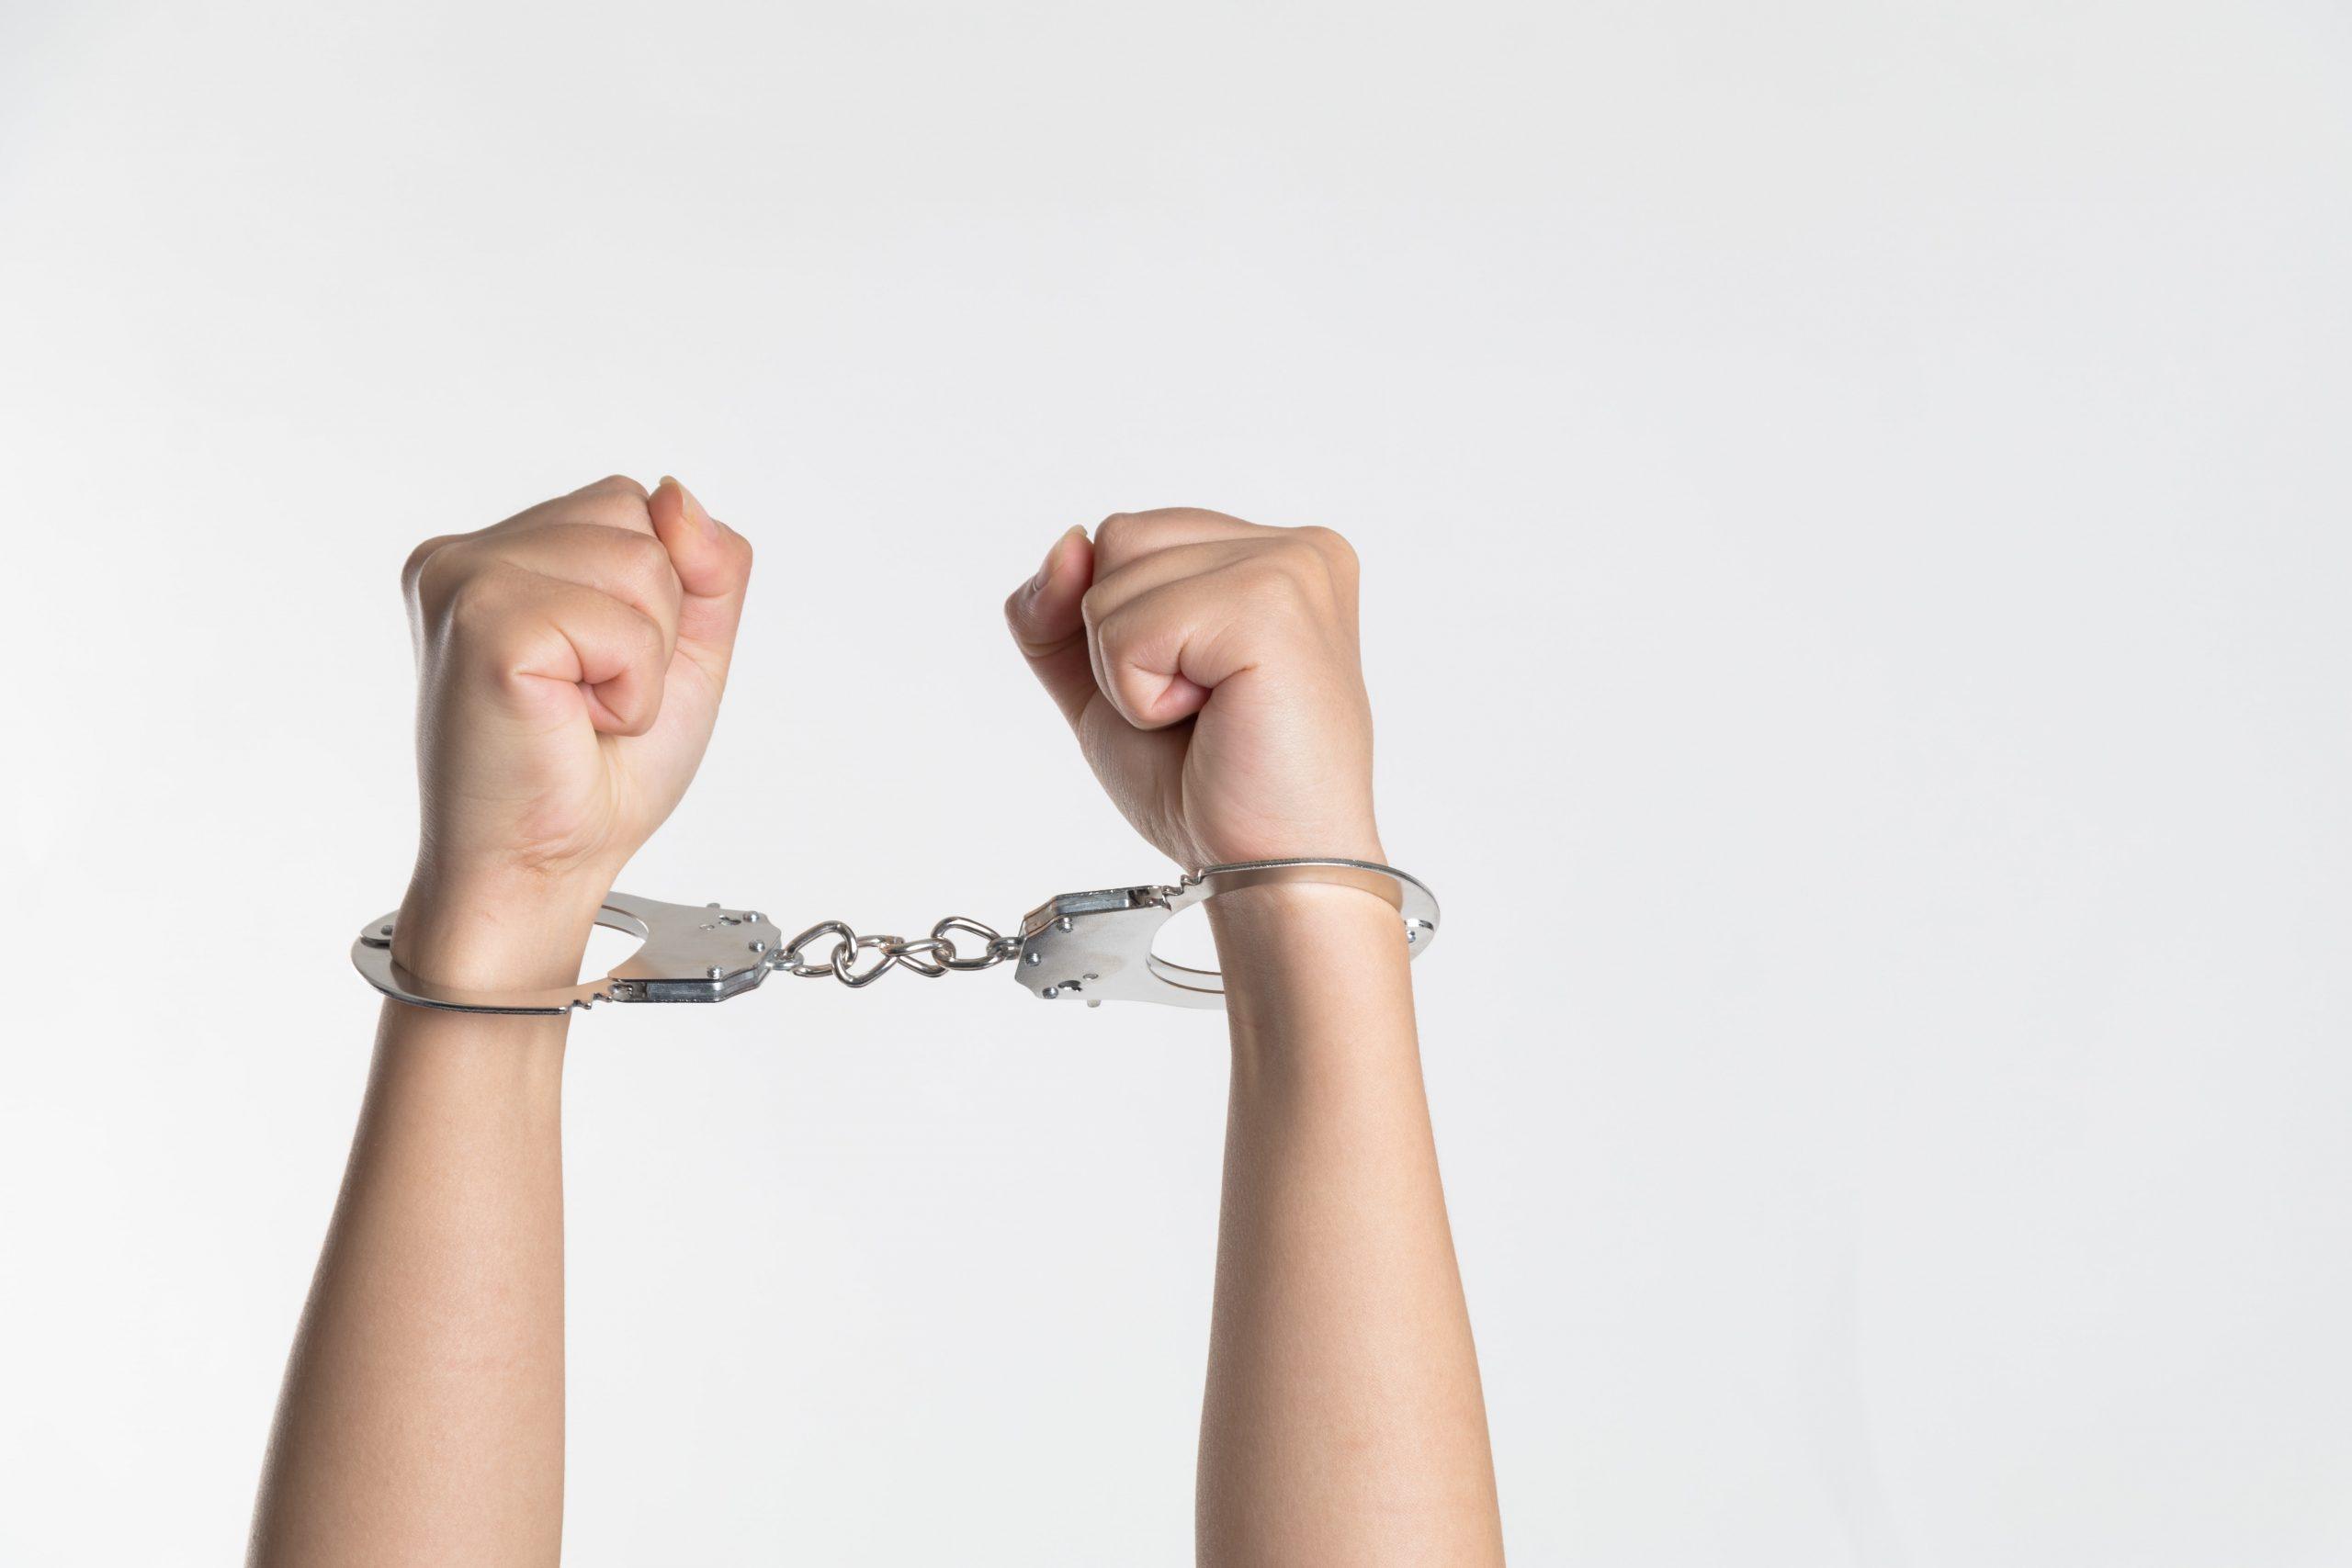 A pair of cuffed hands in fists are held aloft.